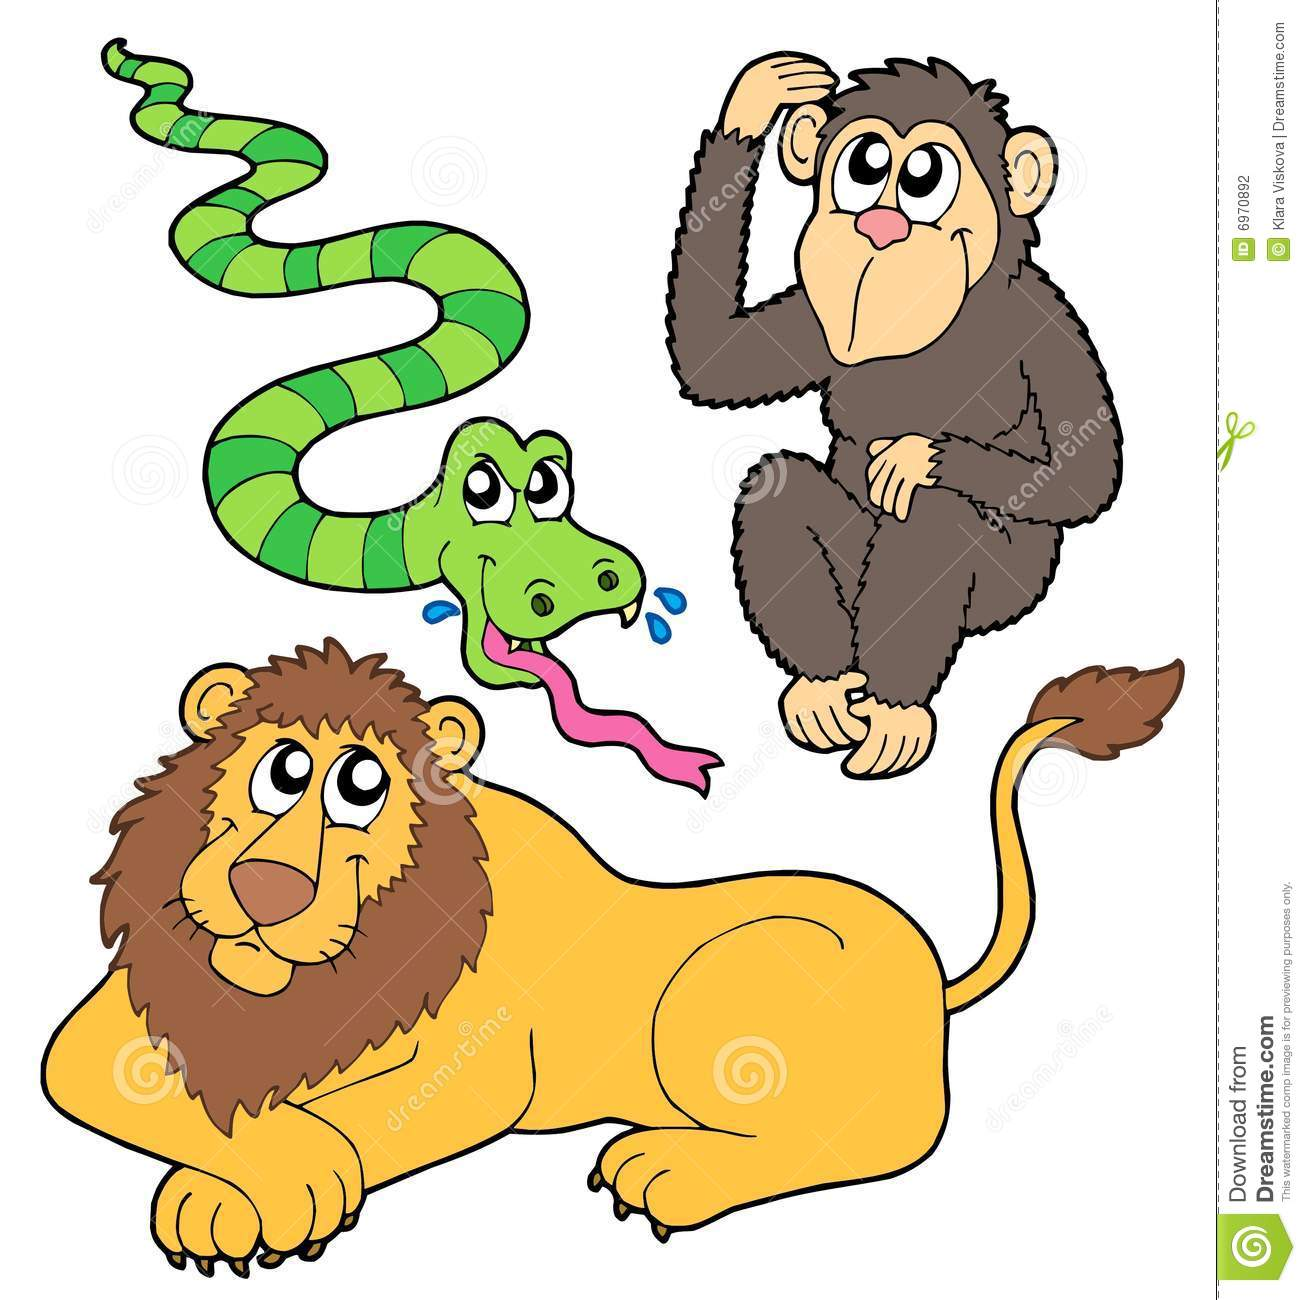 Zoo Animals Together Clipart | www.imgkid.com - The Image ...